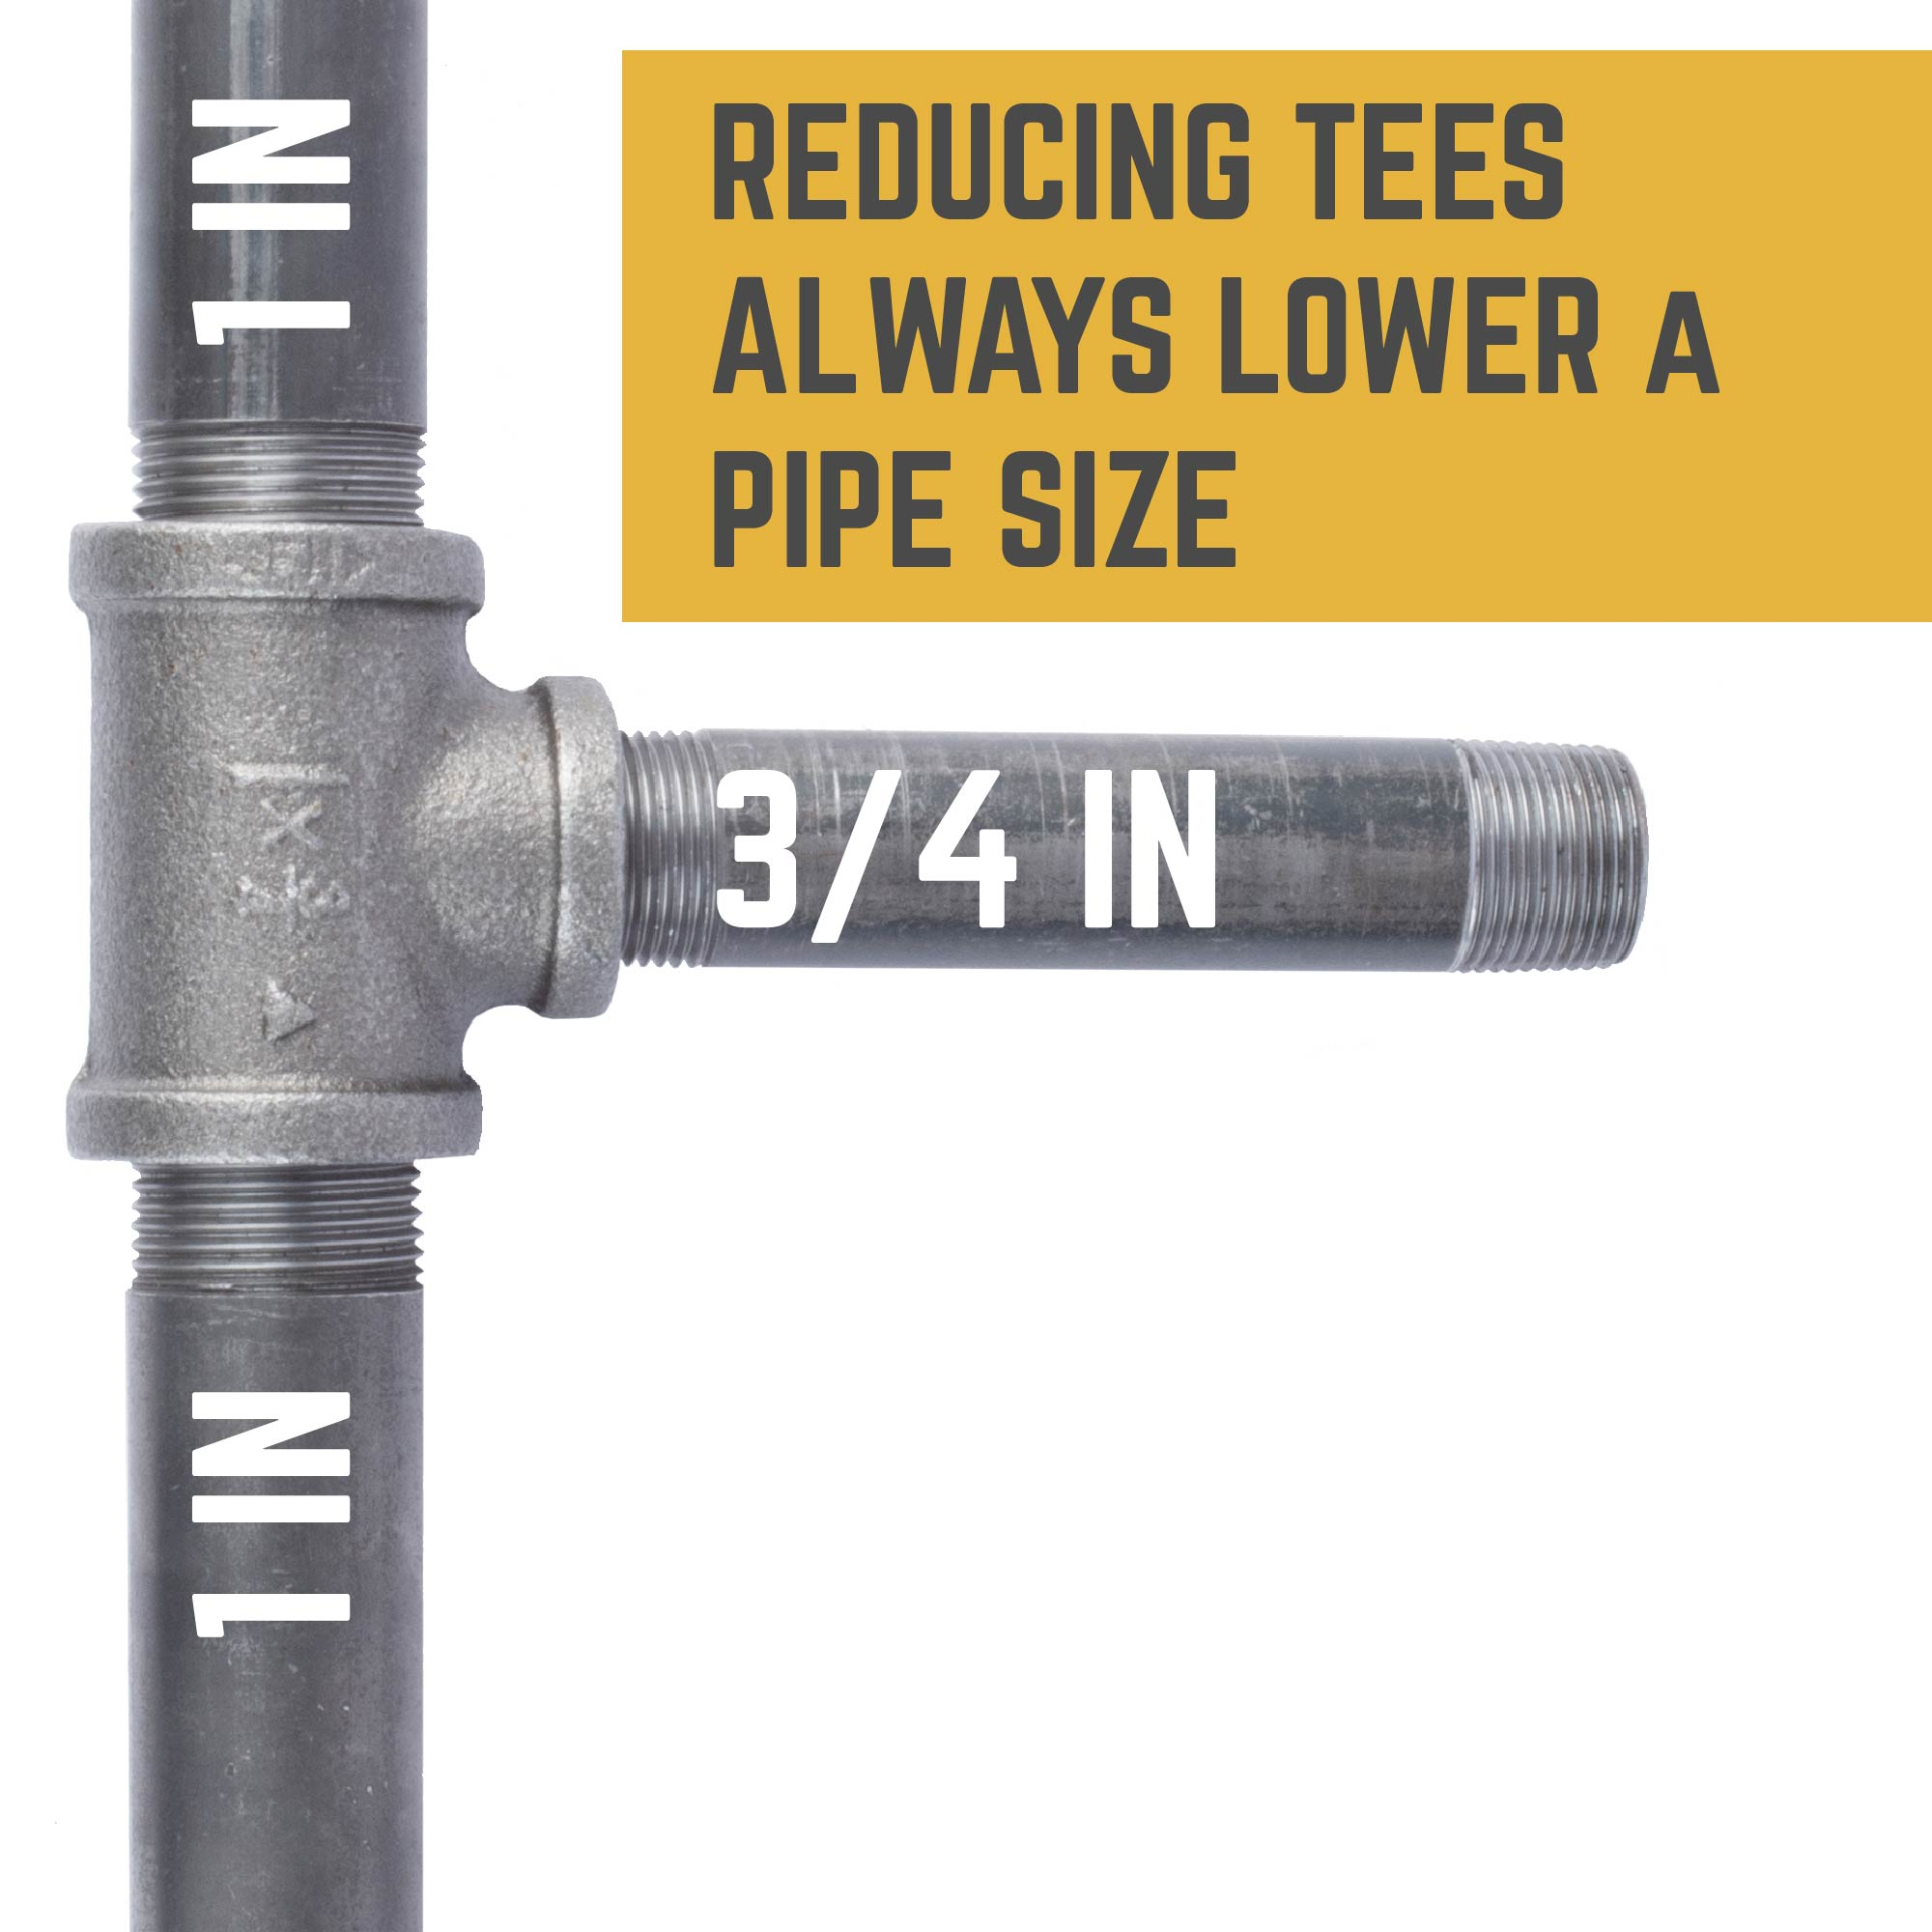 1 IN X 1 IN X 3/4 IN REDUCING TEE